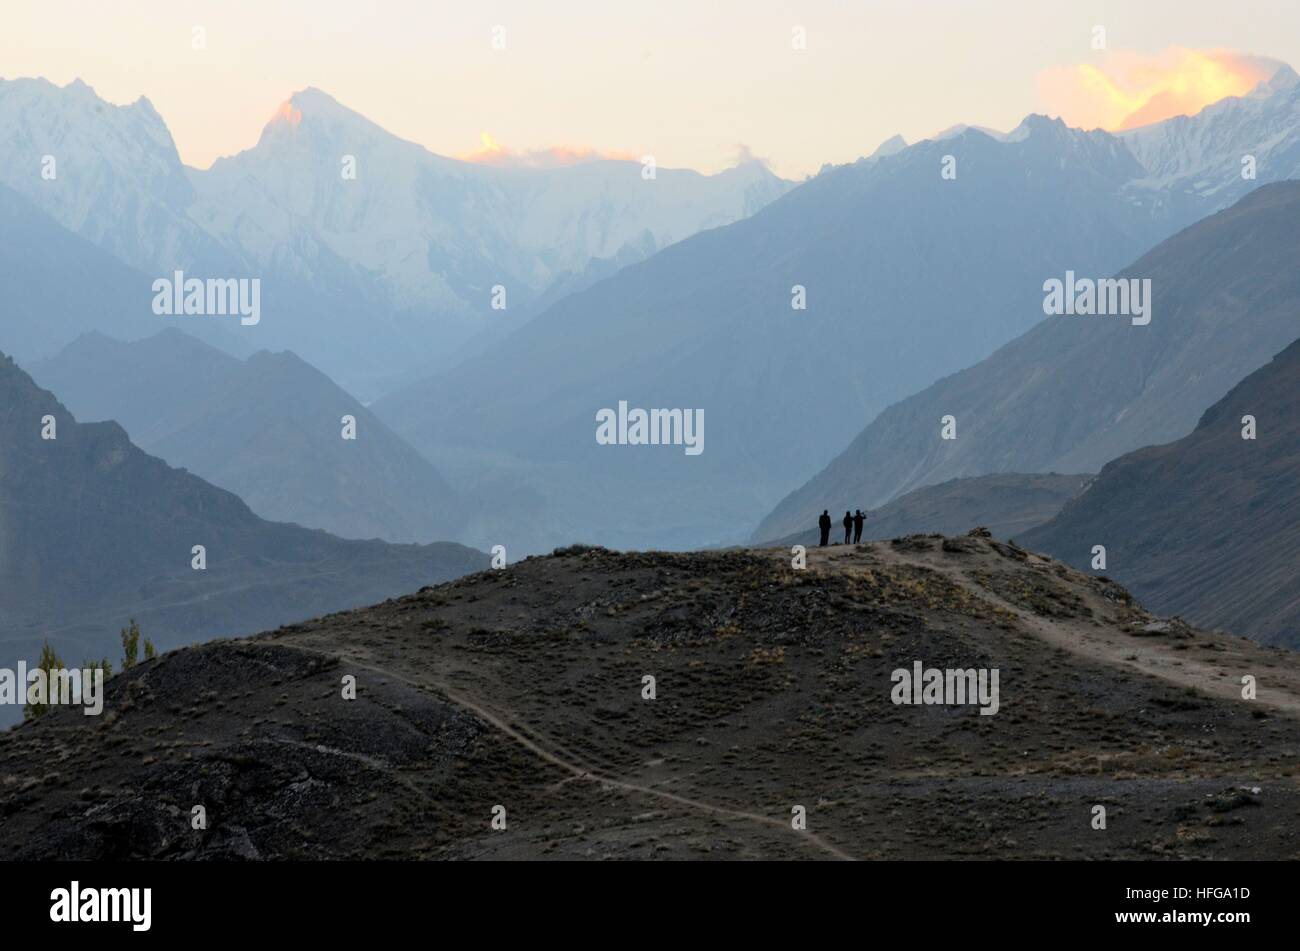 Men on mountain peak watch sunrise among the Karakoram mountains in Duiker Plateau Hunza Valley Pakistan - Stock Image